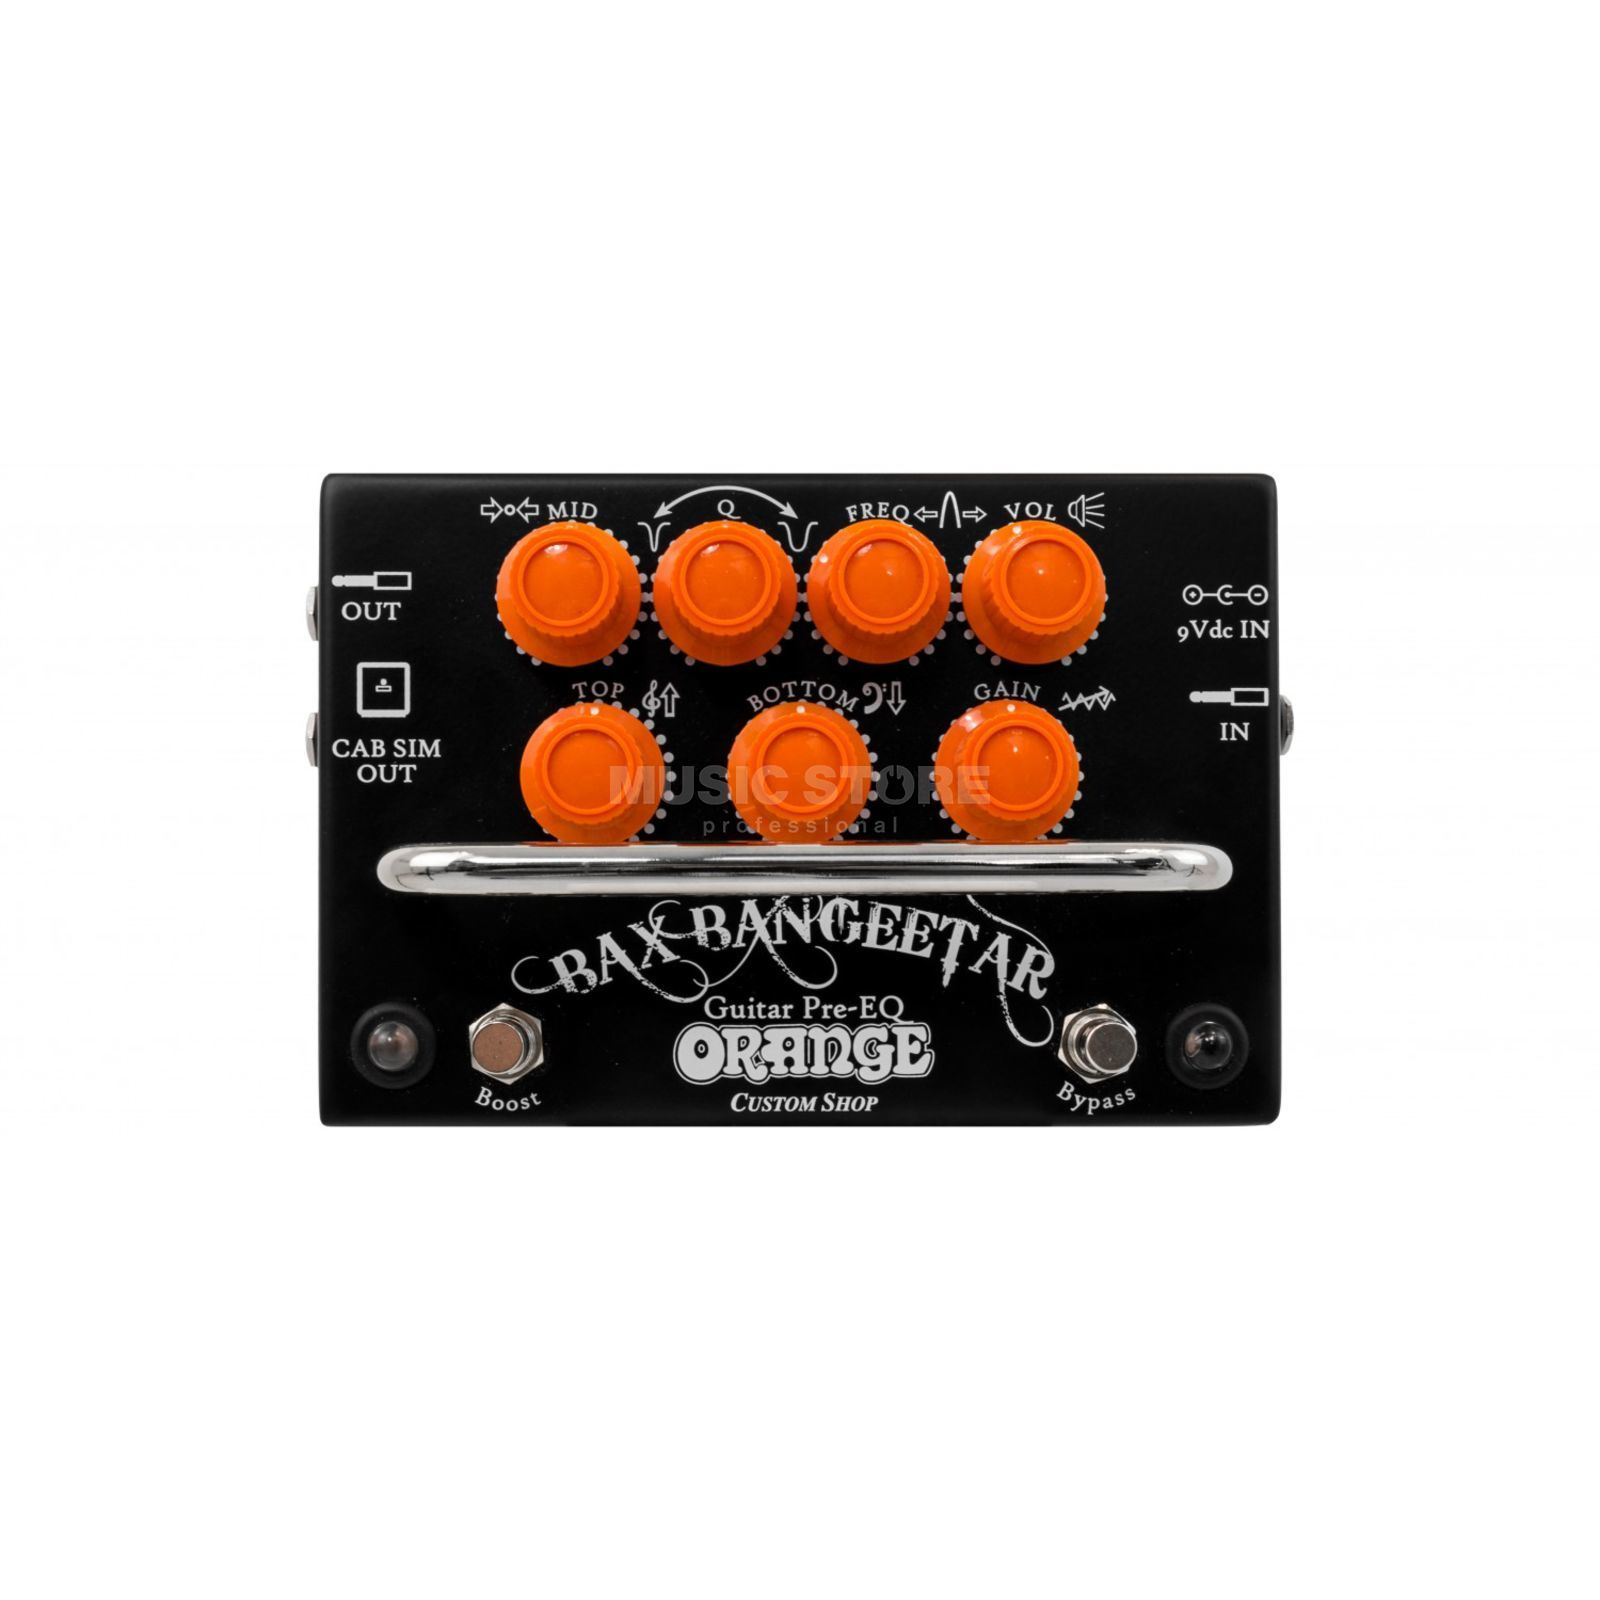 Orange Bax Bangeetar Guitar Pre-EQ Black Изображение товара